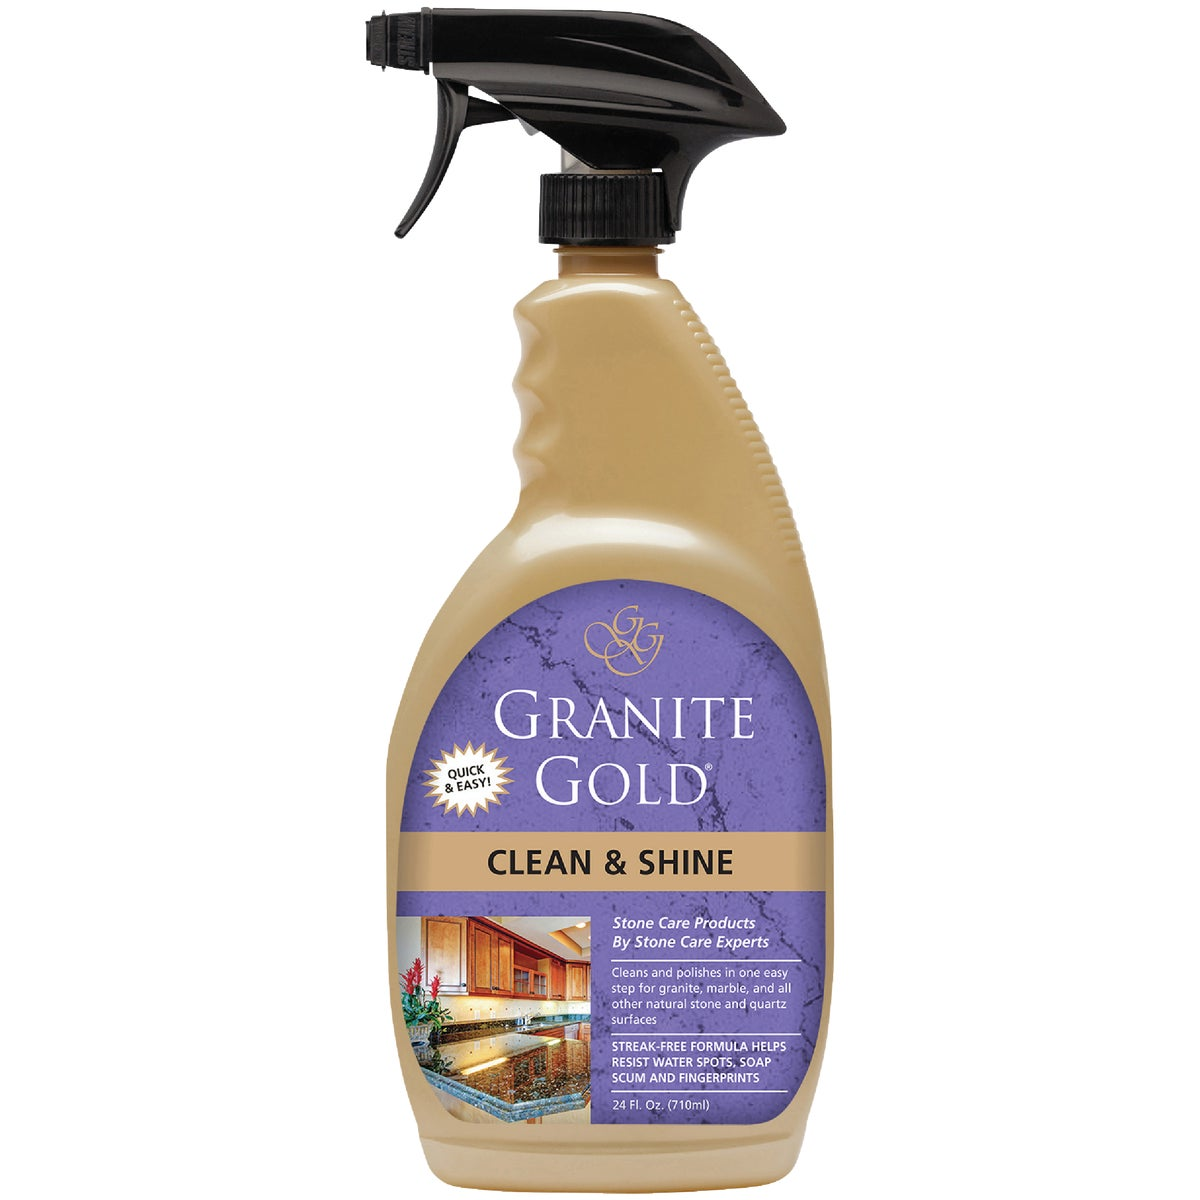 Granite Gold Clean & Shine Stone Polish, GG0047